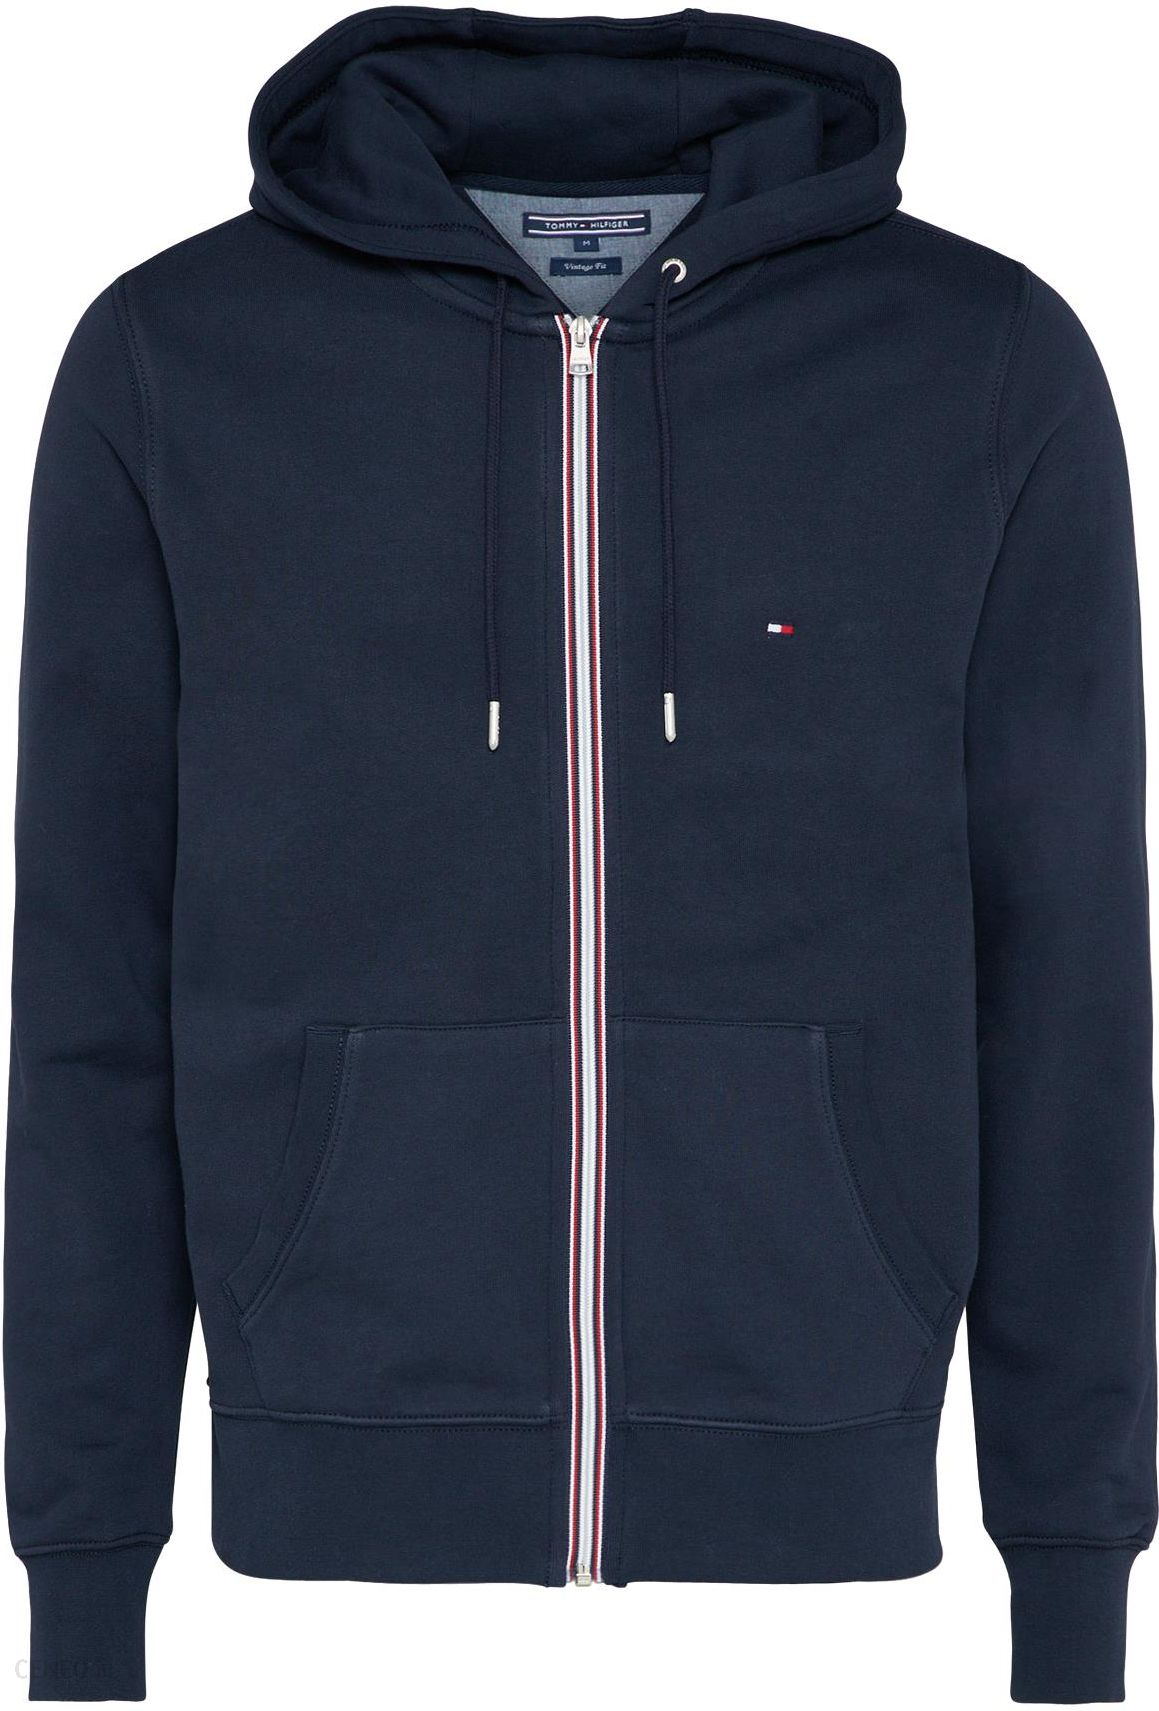 5af5d5fb72a5b TOMMY HILFIGER Bluza rozpinana 'CORE COTTON ZIP HOODIE' - Ceny i ...